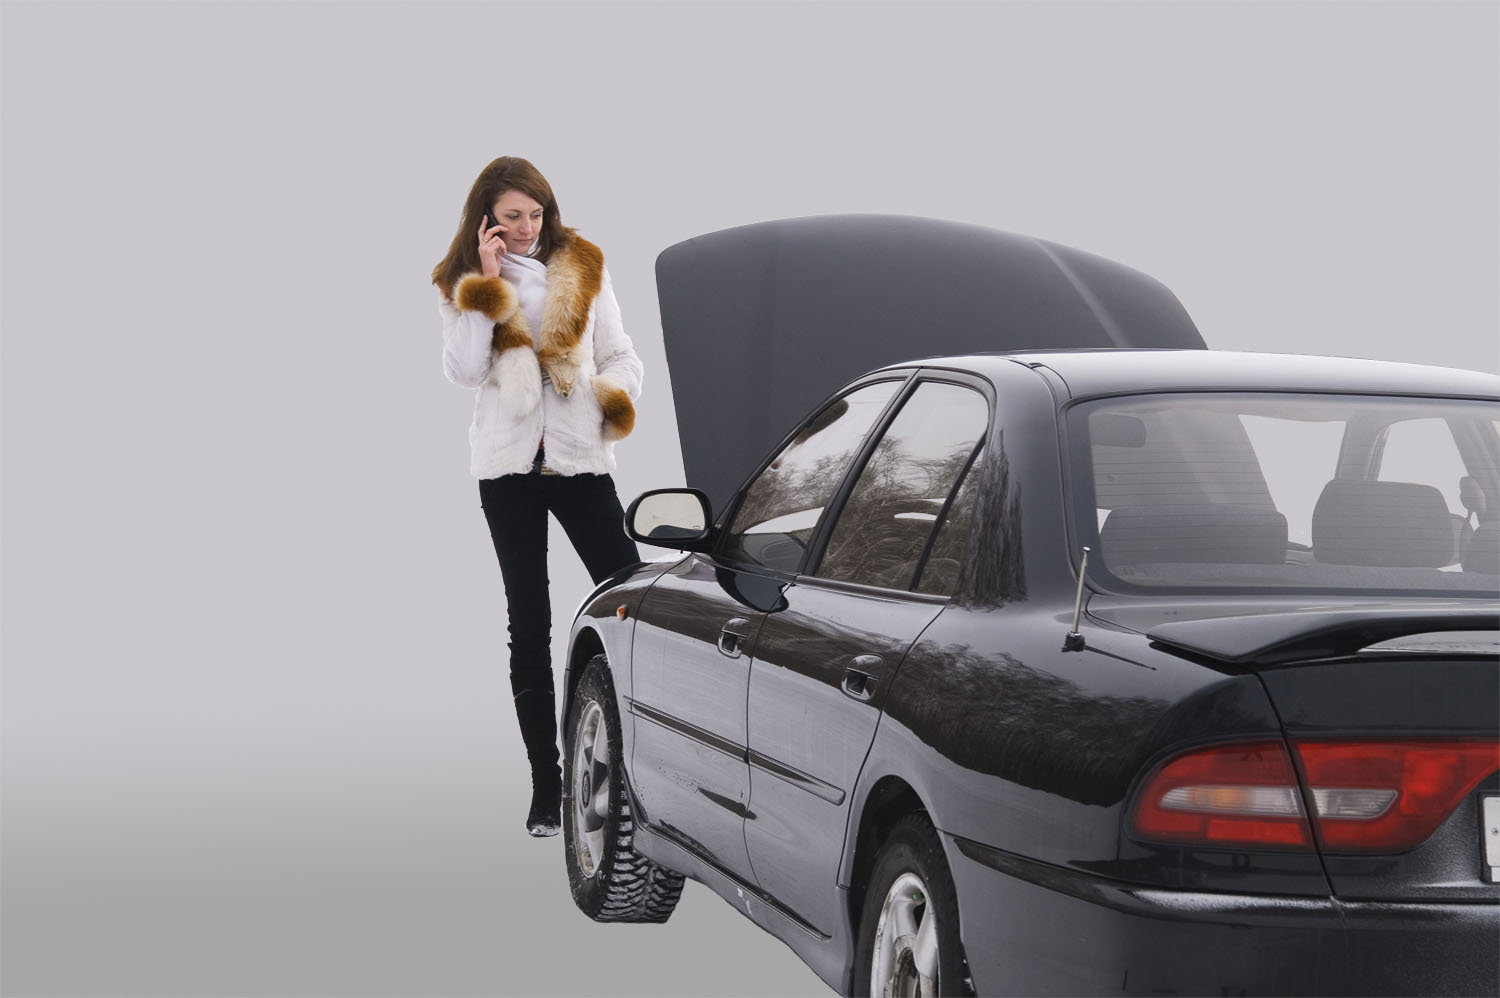 breakdown-car-woman-phone